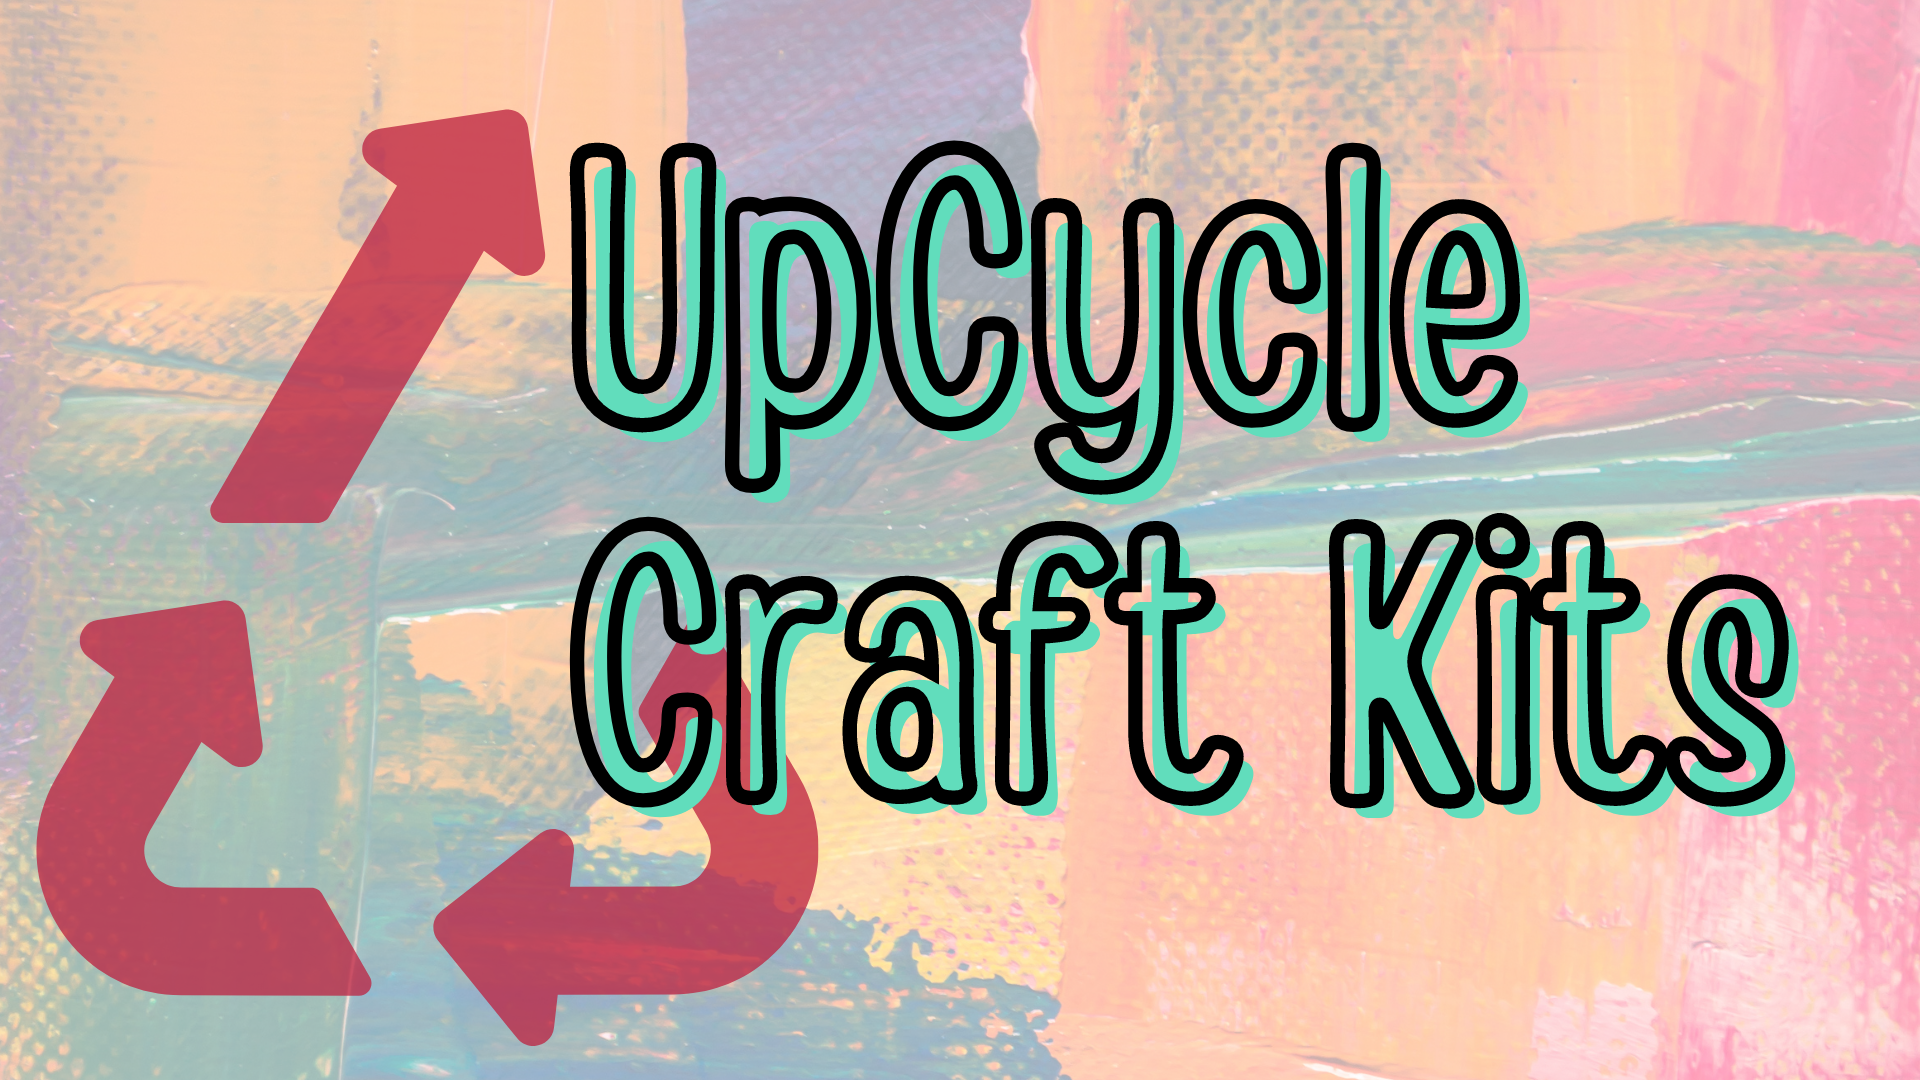 UpCycle Craft Kits: Cereal Boxes